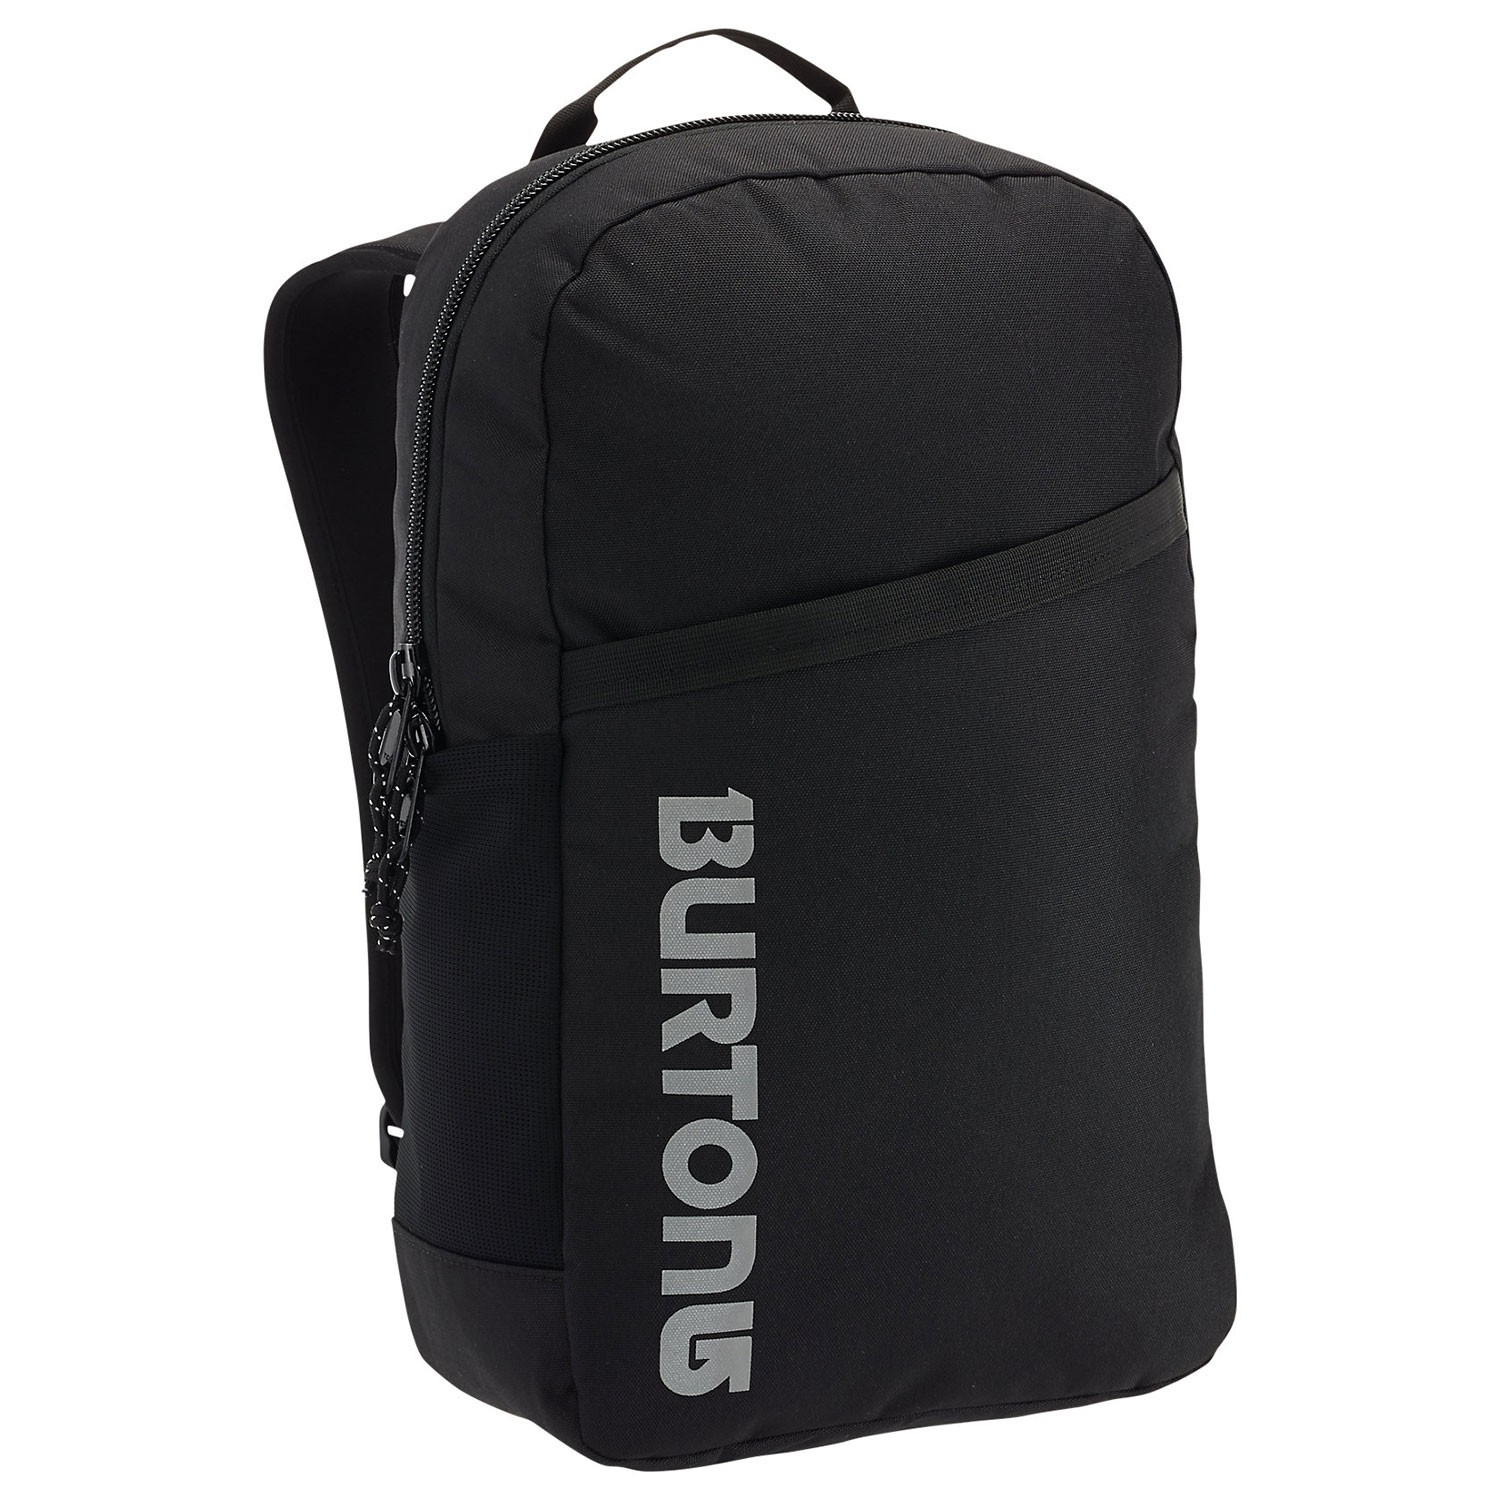 Batoh Burton Apollo true black